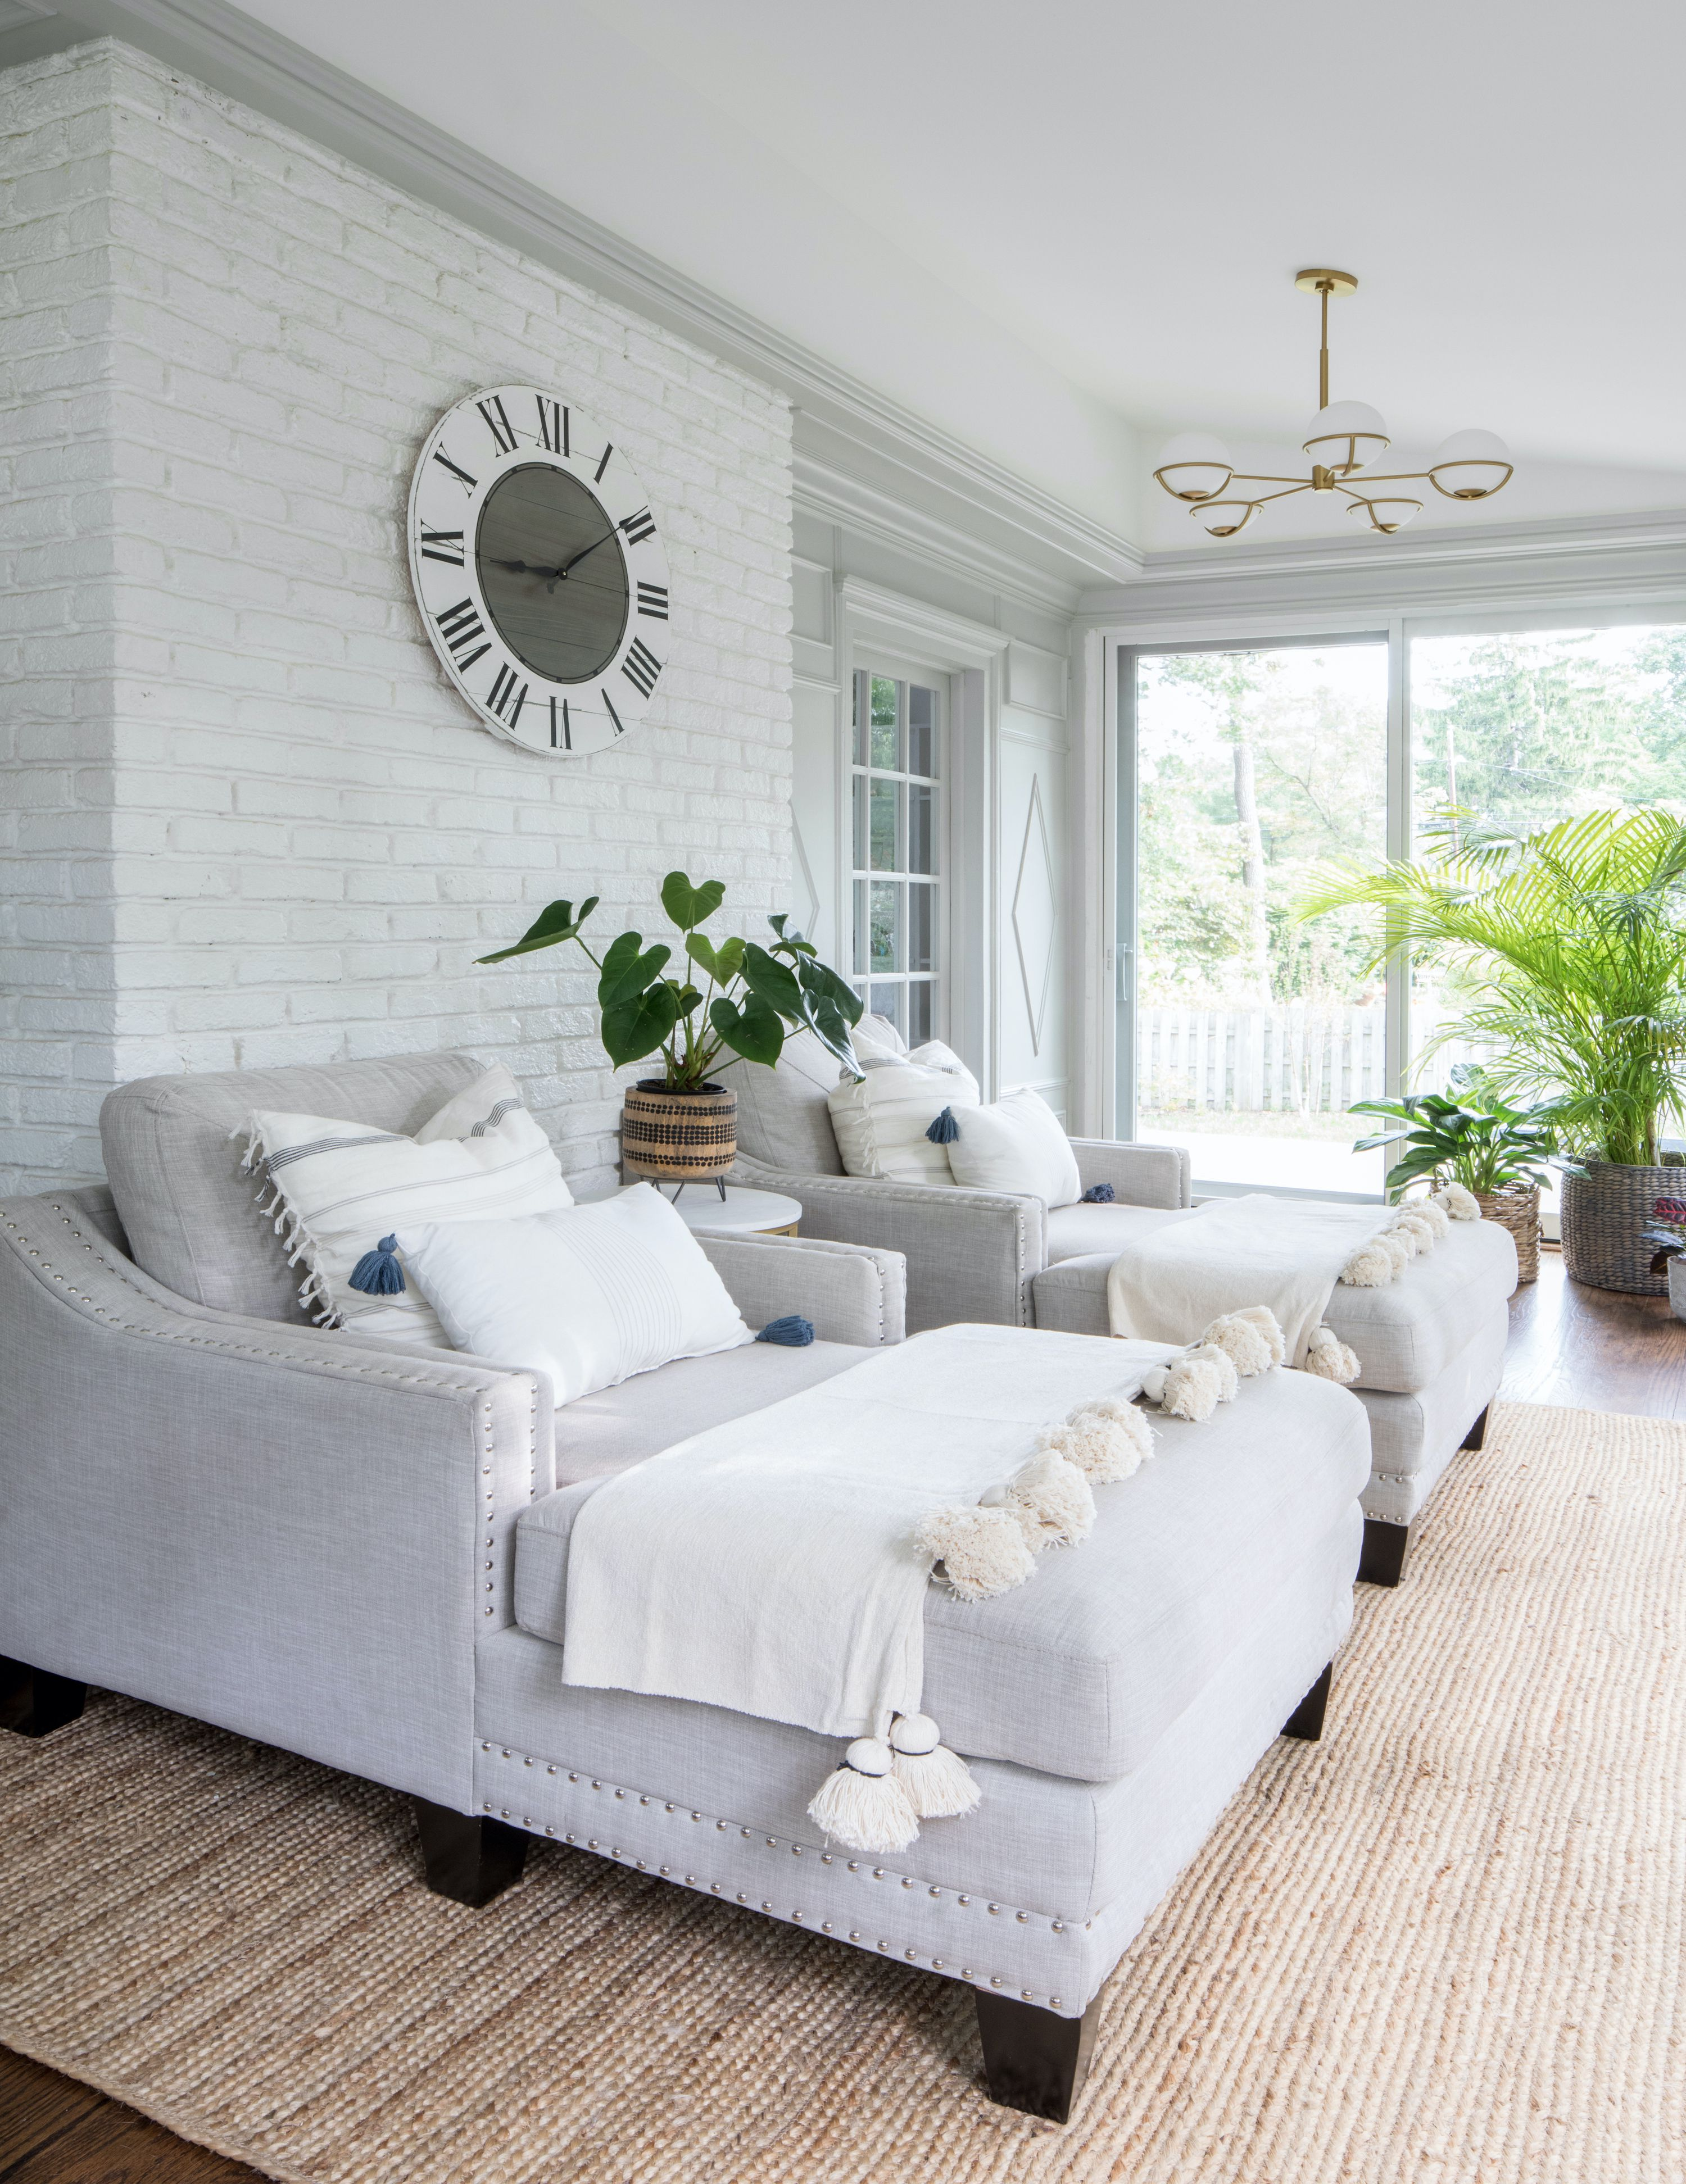 How Designer Danielle Chiprut Transformed an Empty Sunroom Into a Cozy Sanctuary